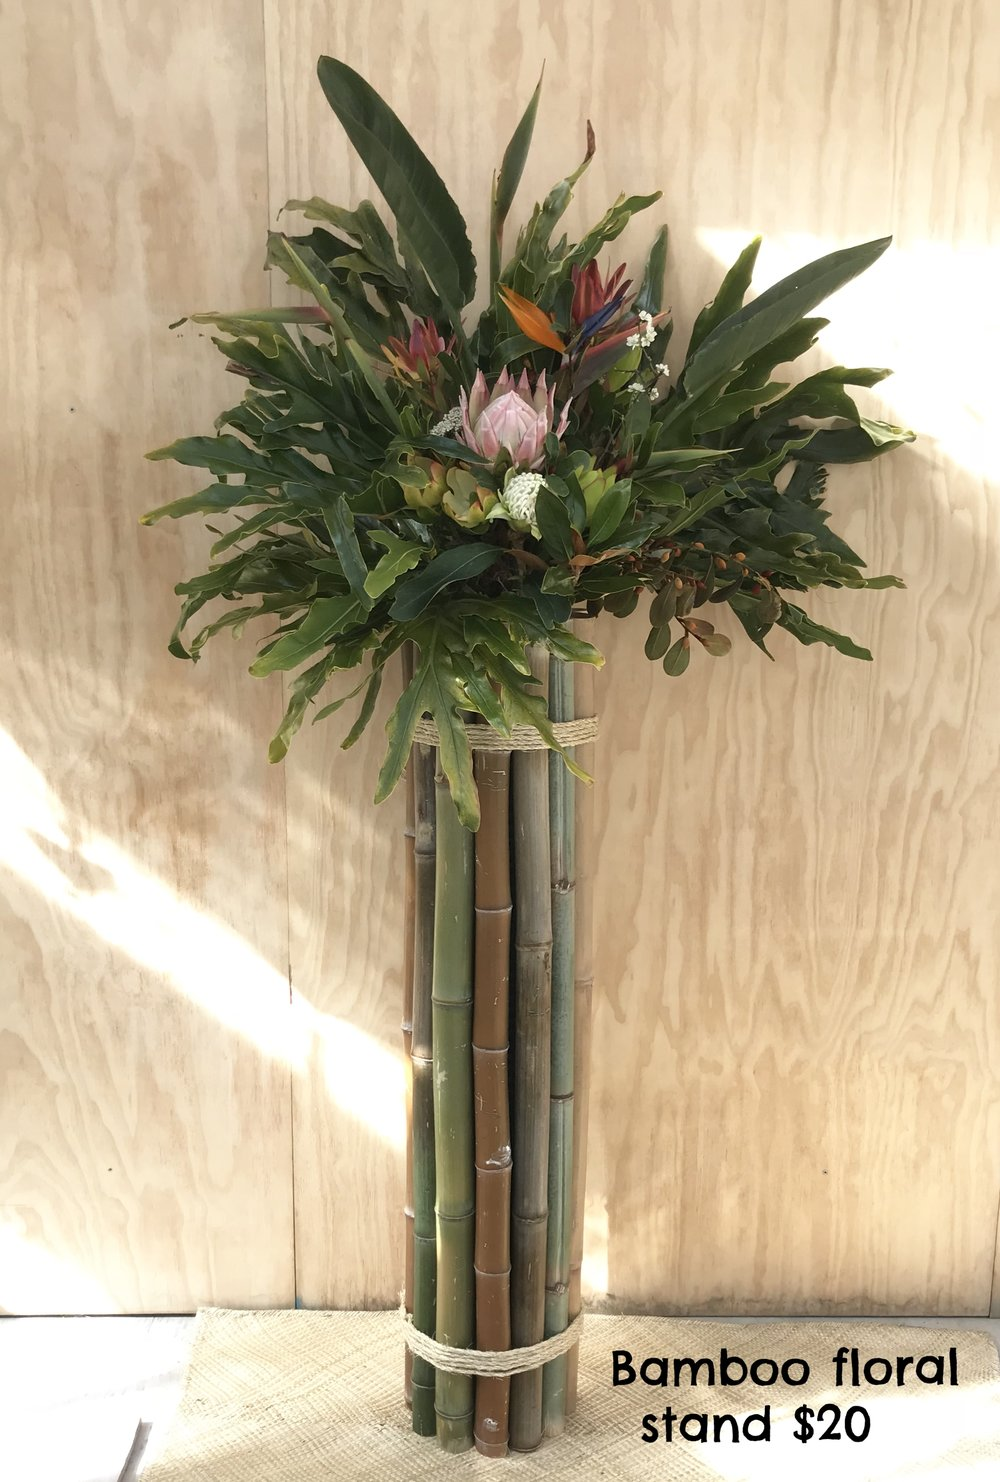 Bamboo floral stand